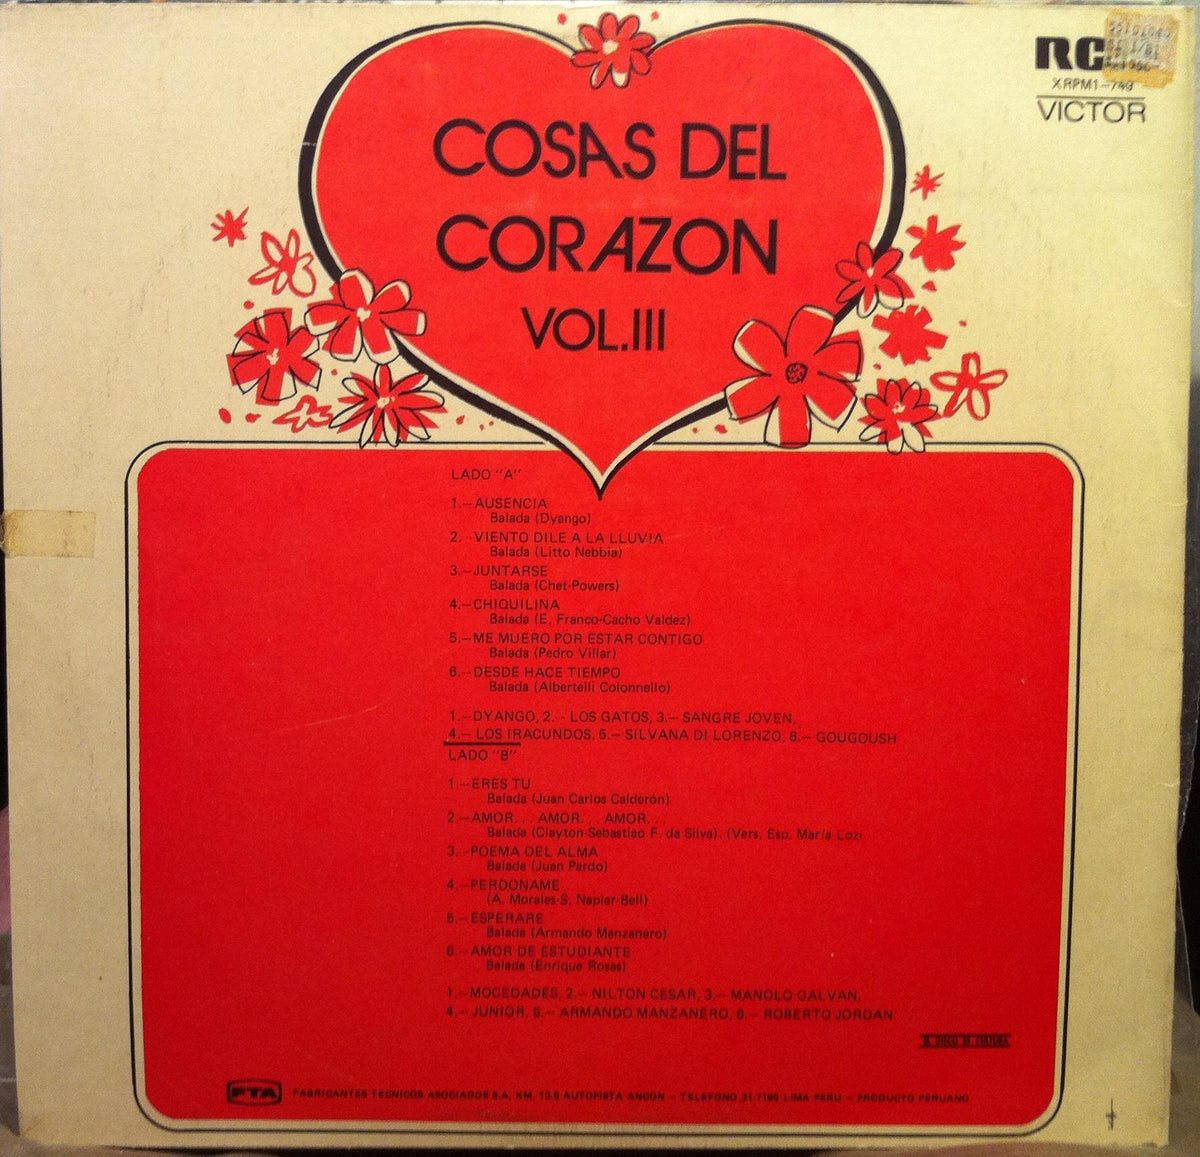 Various Cosas Del Corazon Vol Iii Lp Vg Xrpm1 749 Vinyl Record Shuga Records